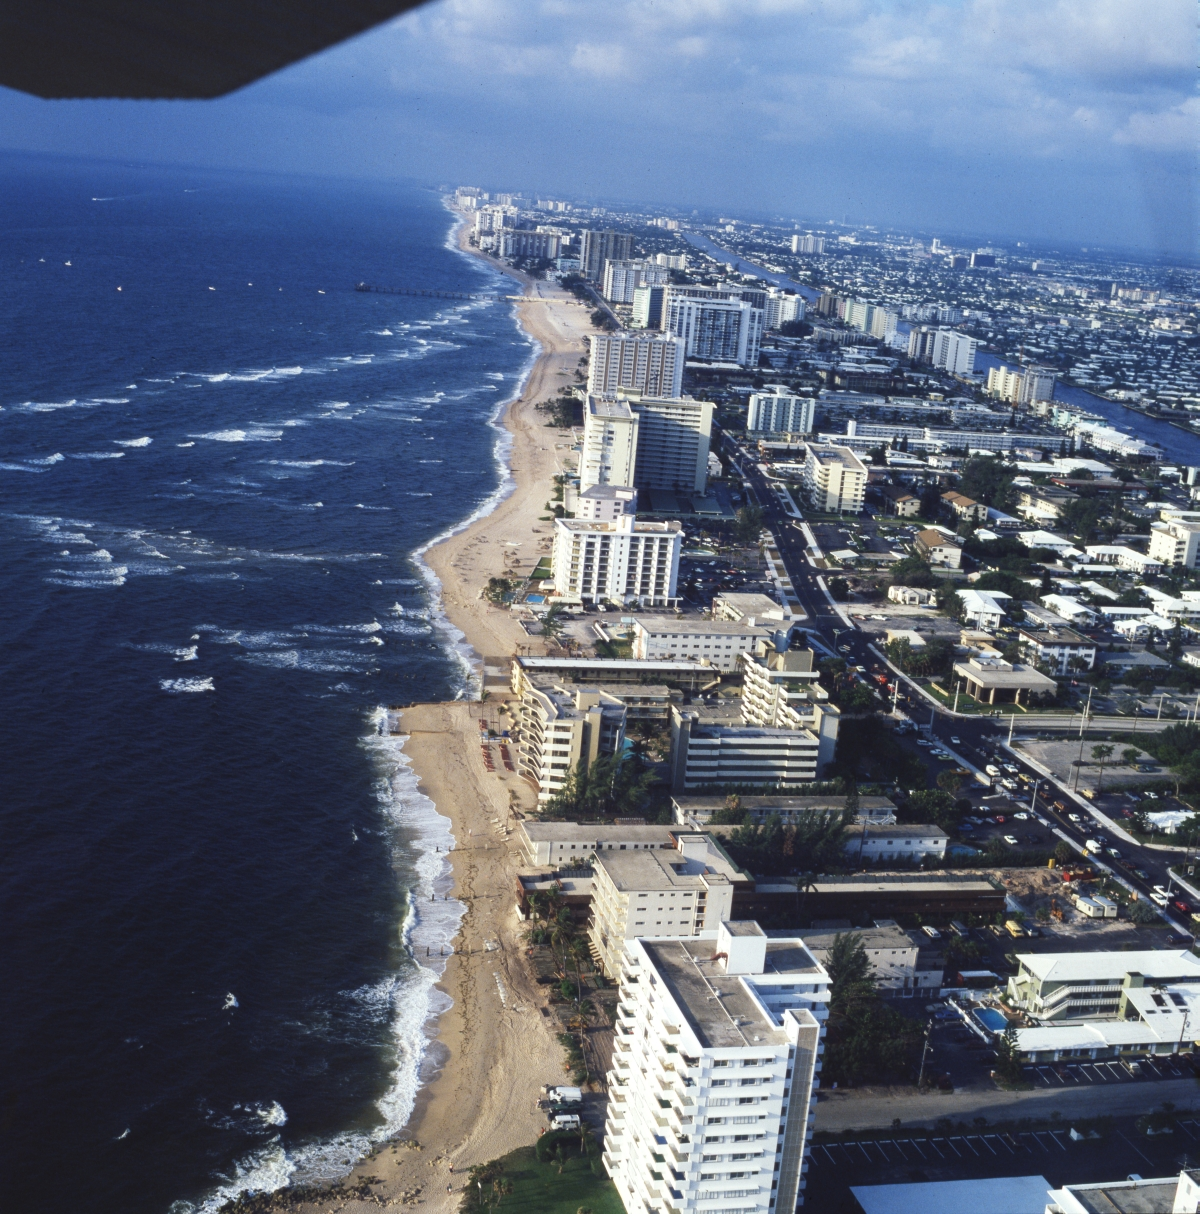 Aerial view looking south down Pompano Beach.